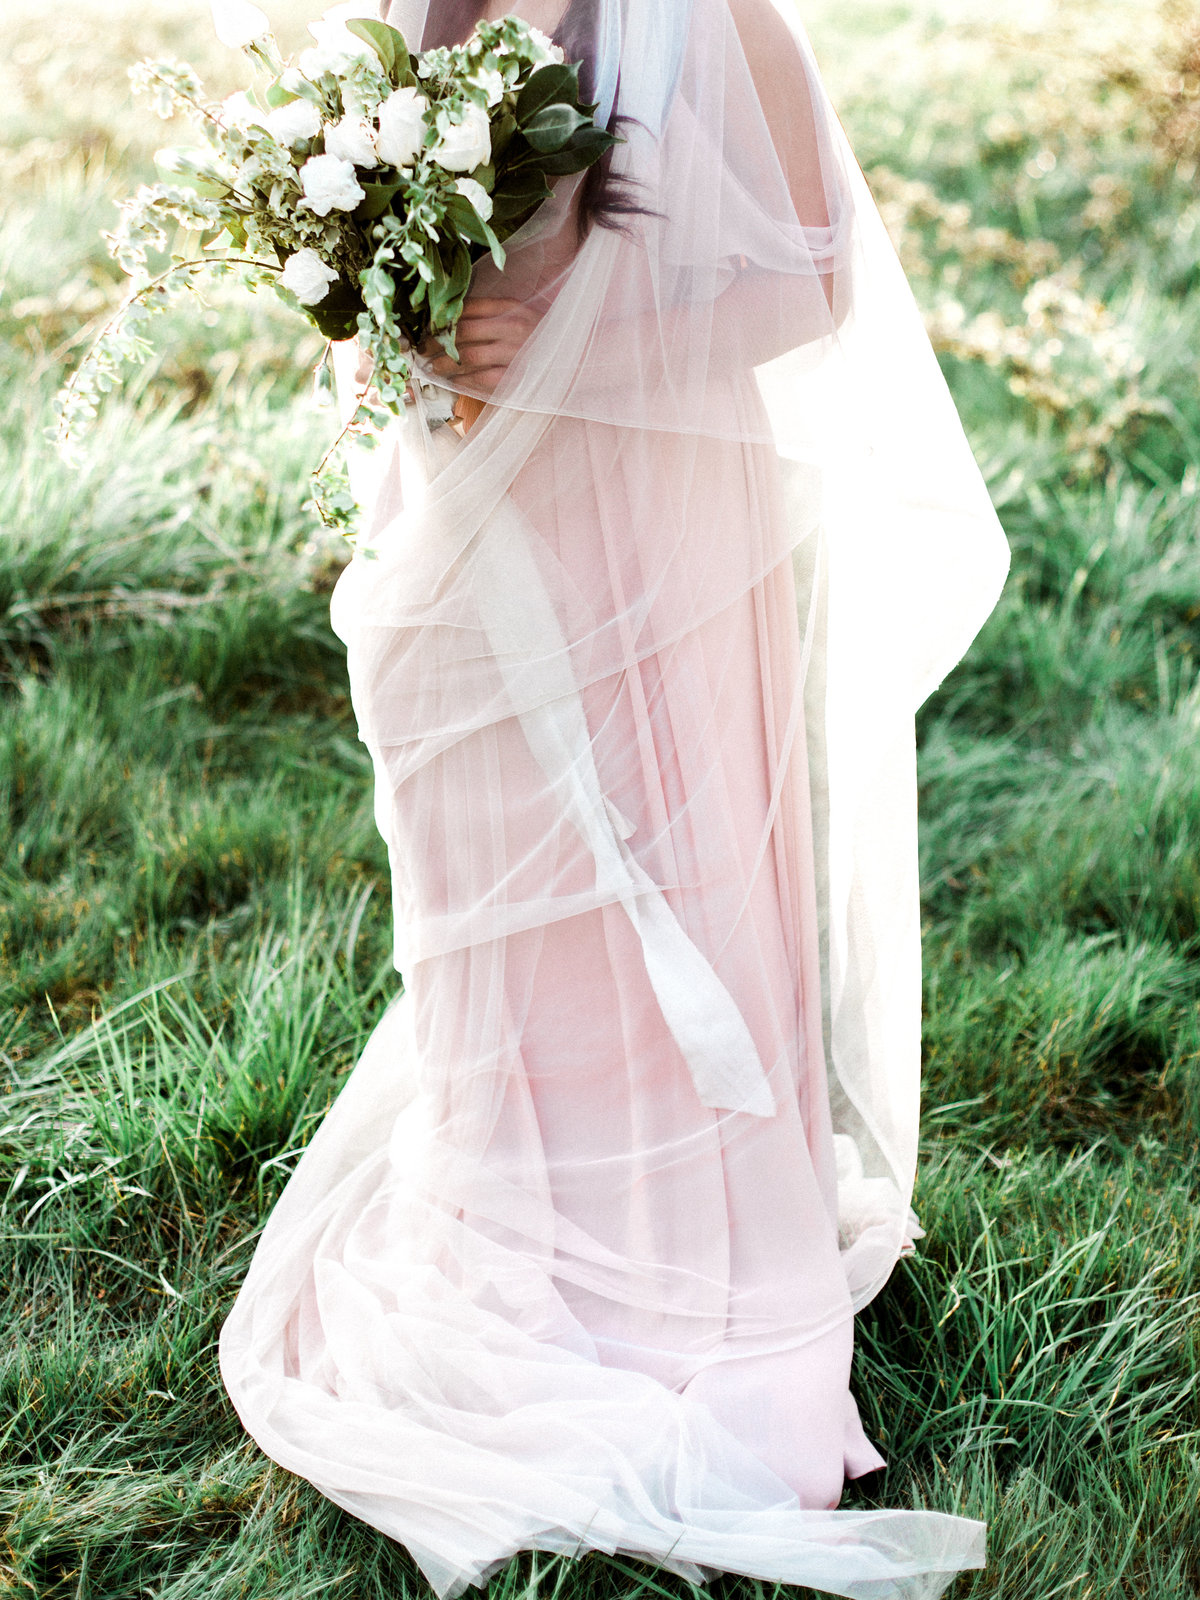 WHEN-SHE-KNEW-PHOTOGRAPHY-ADORN-MAGAZINE-ETHEREAL-BRIDAL-WEDDING-EDITORIAL-OREGON-9